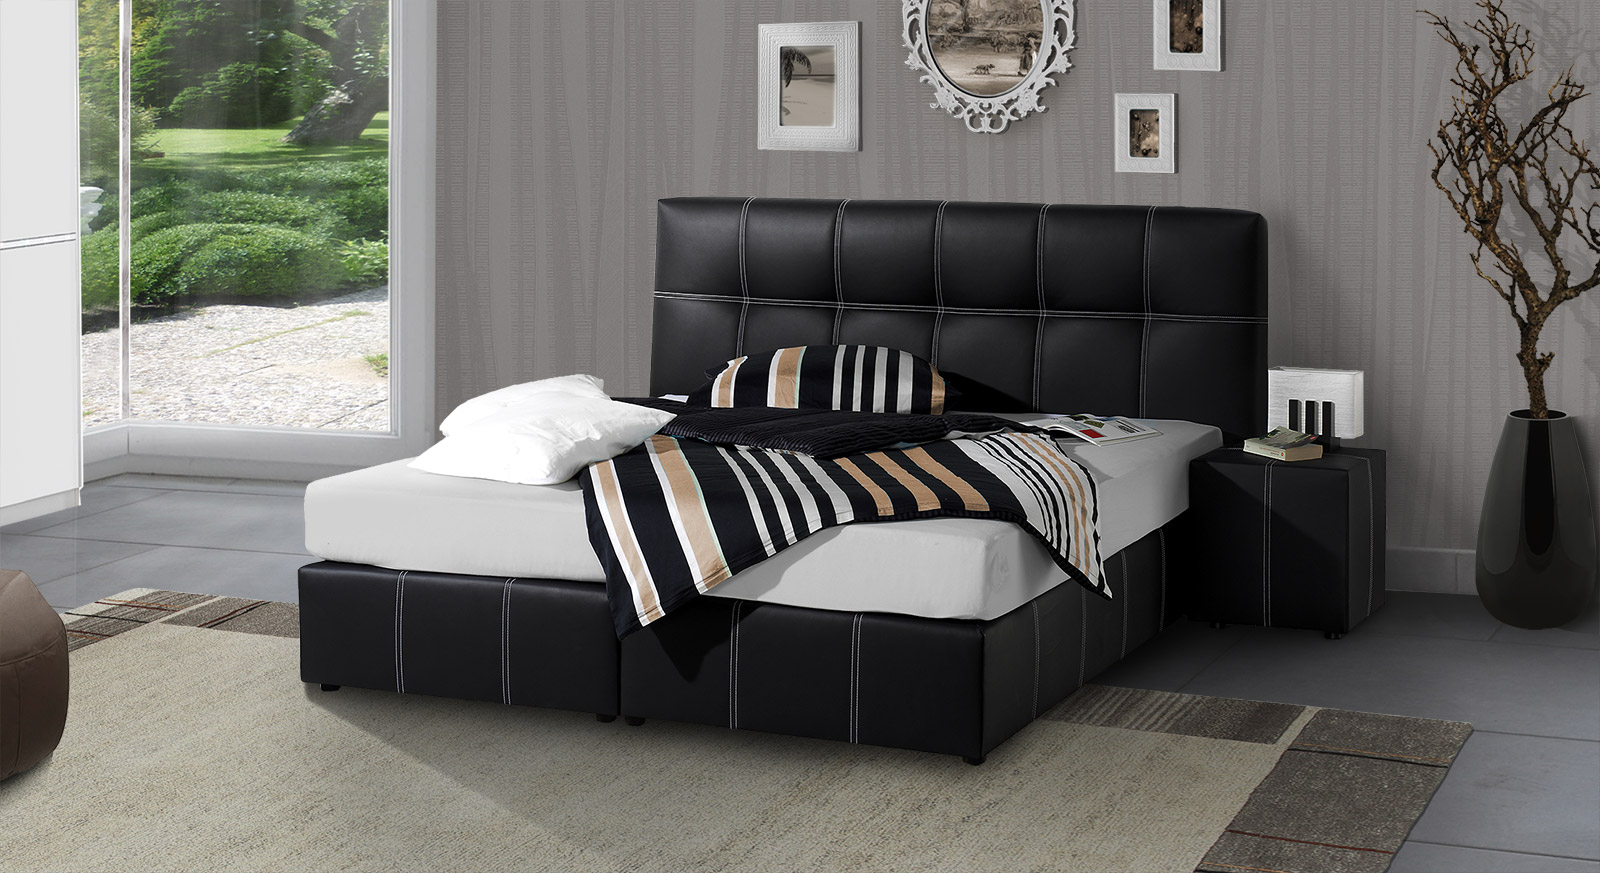 luxus nachttisch wei f r boxspringbett ebenbild erindzain. Black Bedroom Furniture Sets. Home Design Ideas